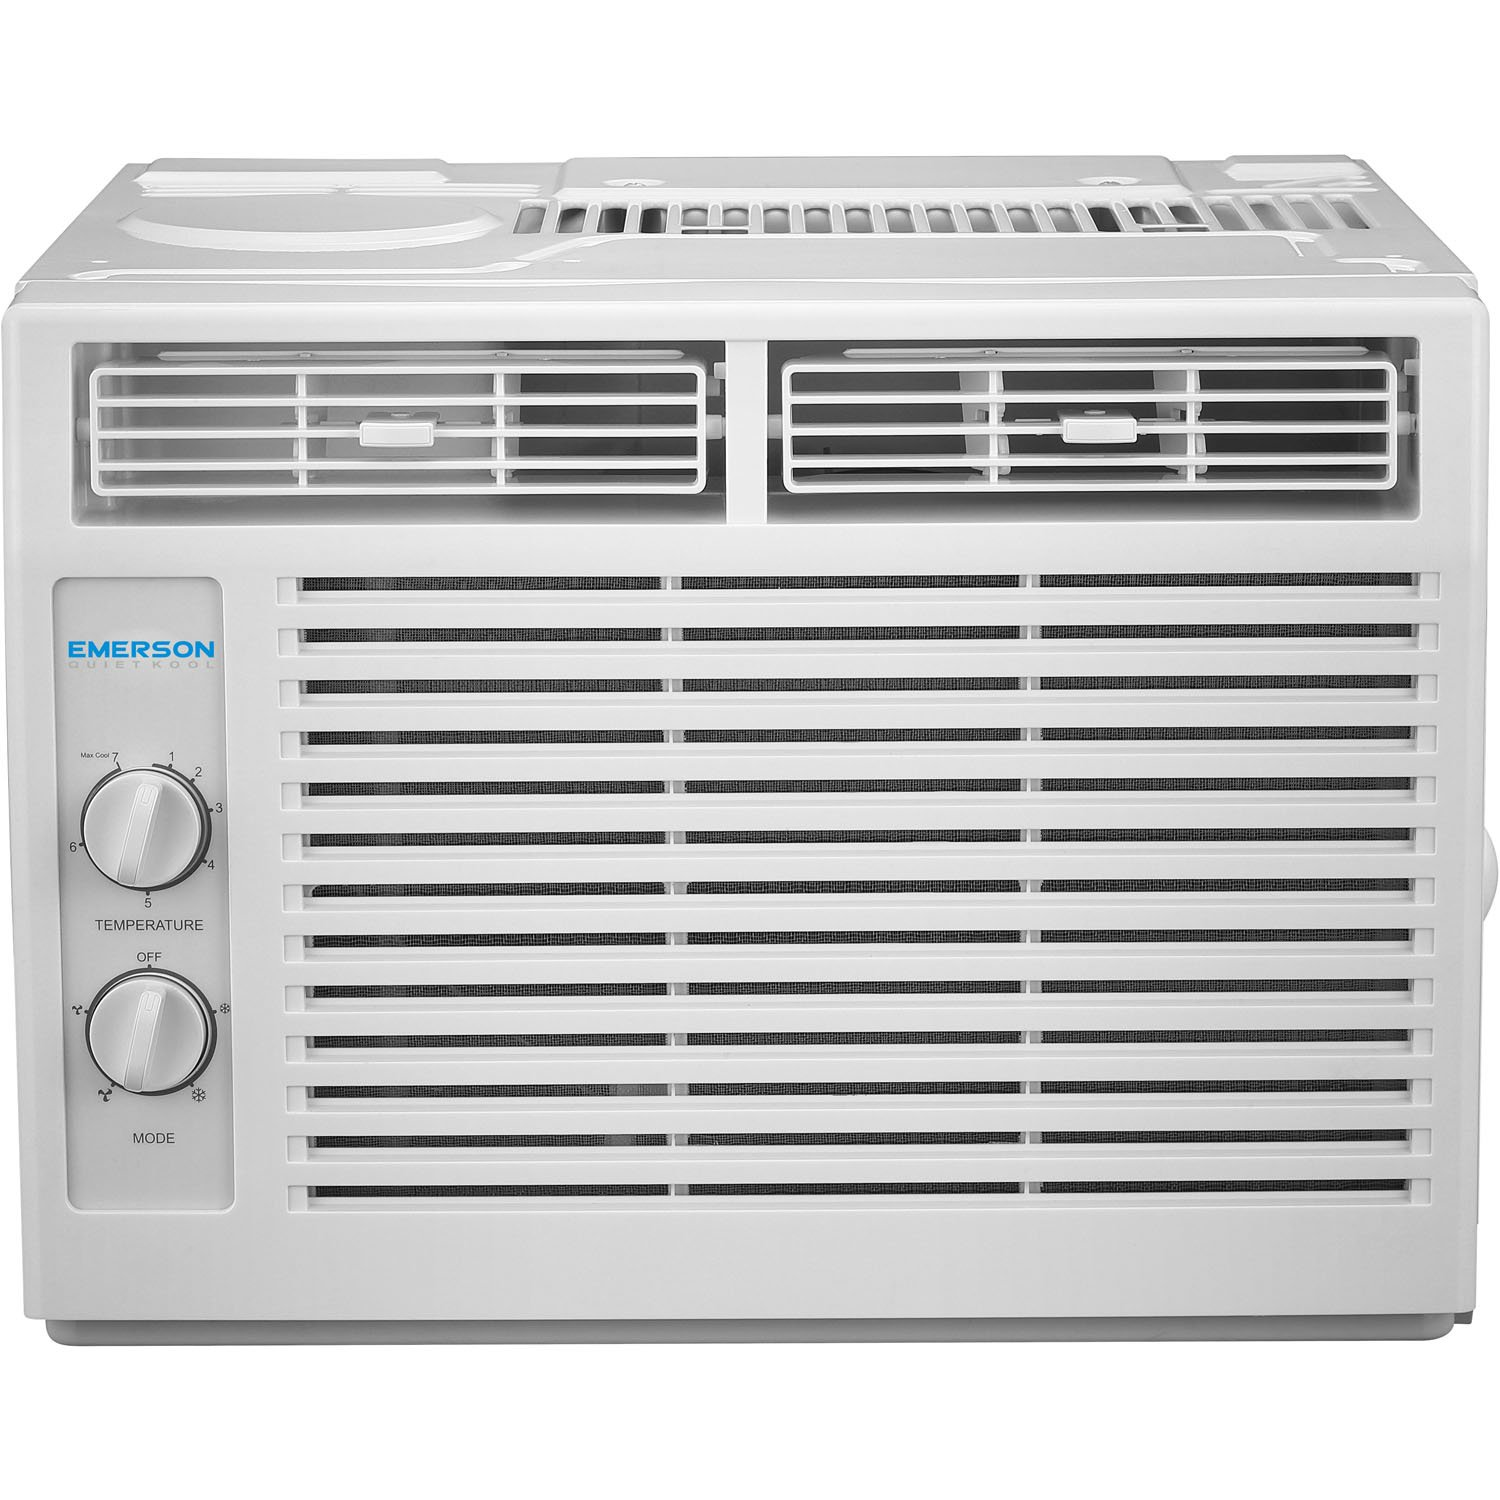 Emerson Quiet Kool EARC5MD1 5,000 BTU 115V Window Air Conditioner, White